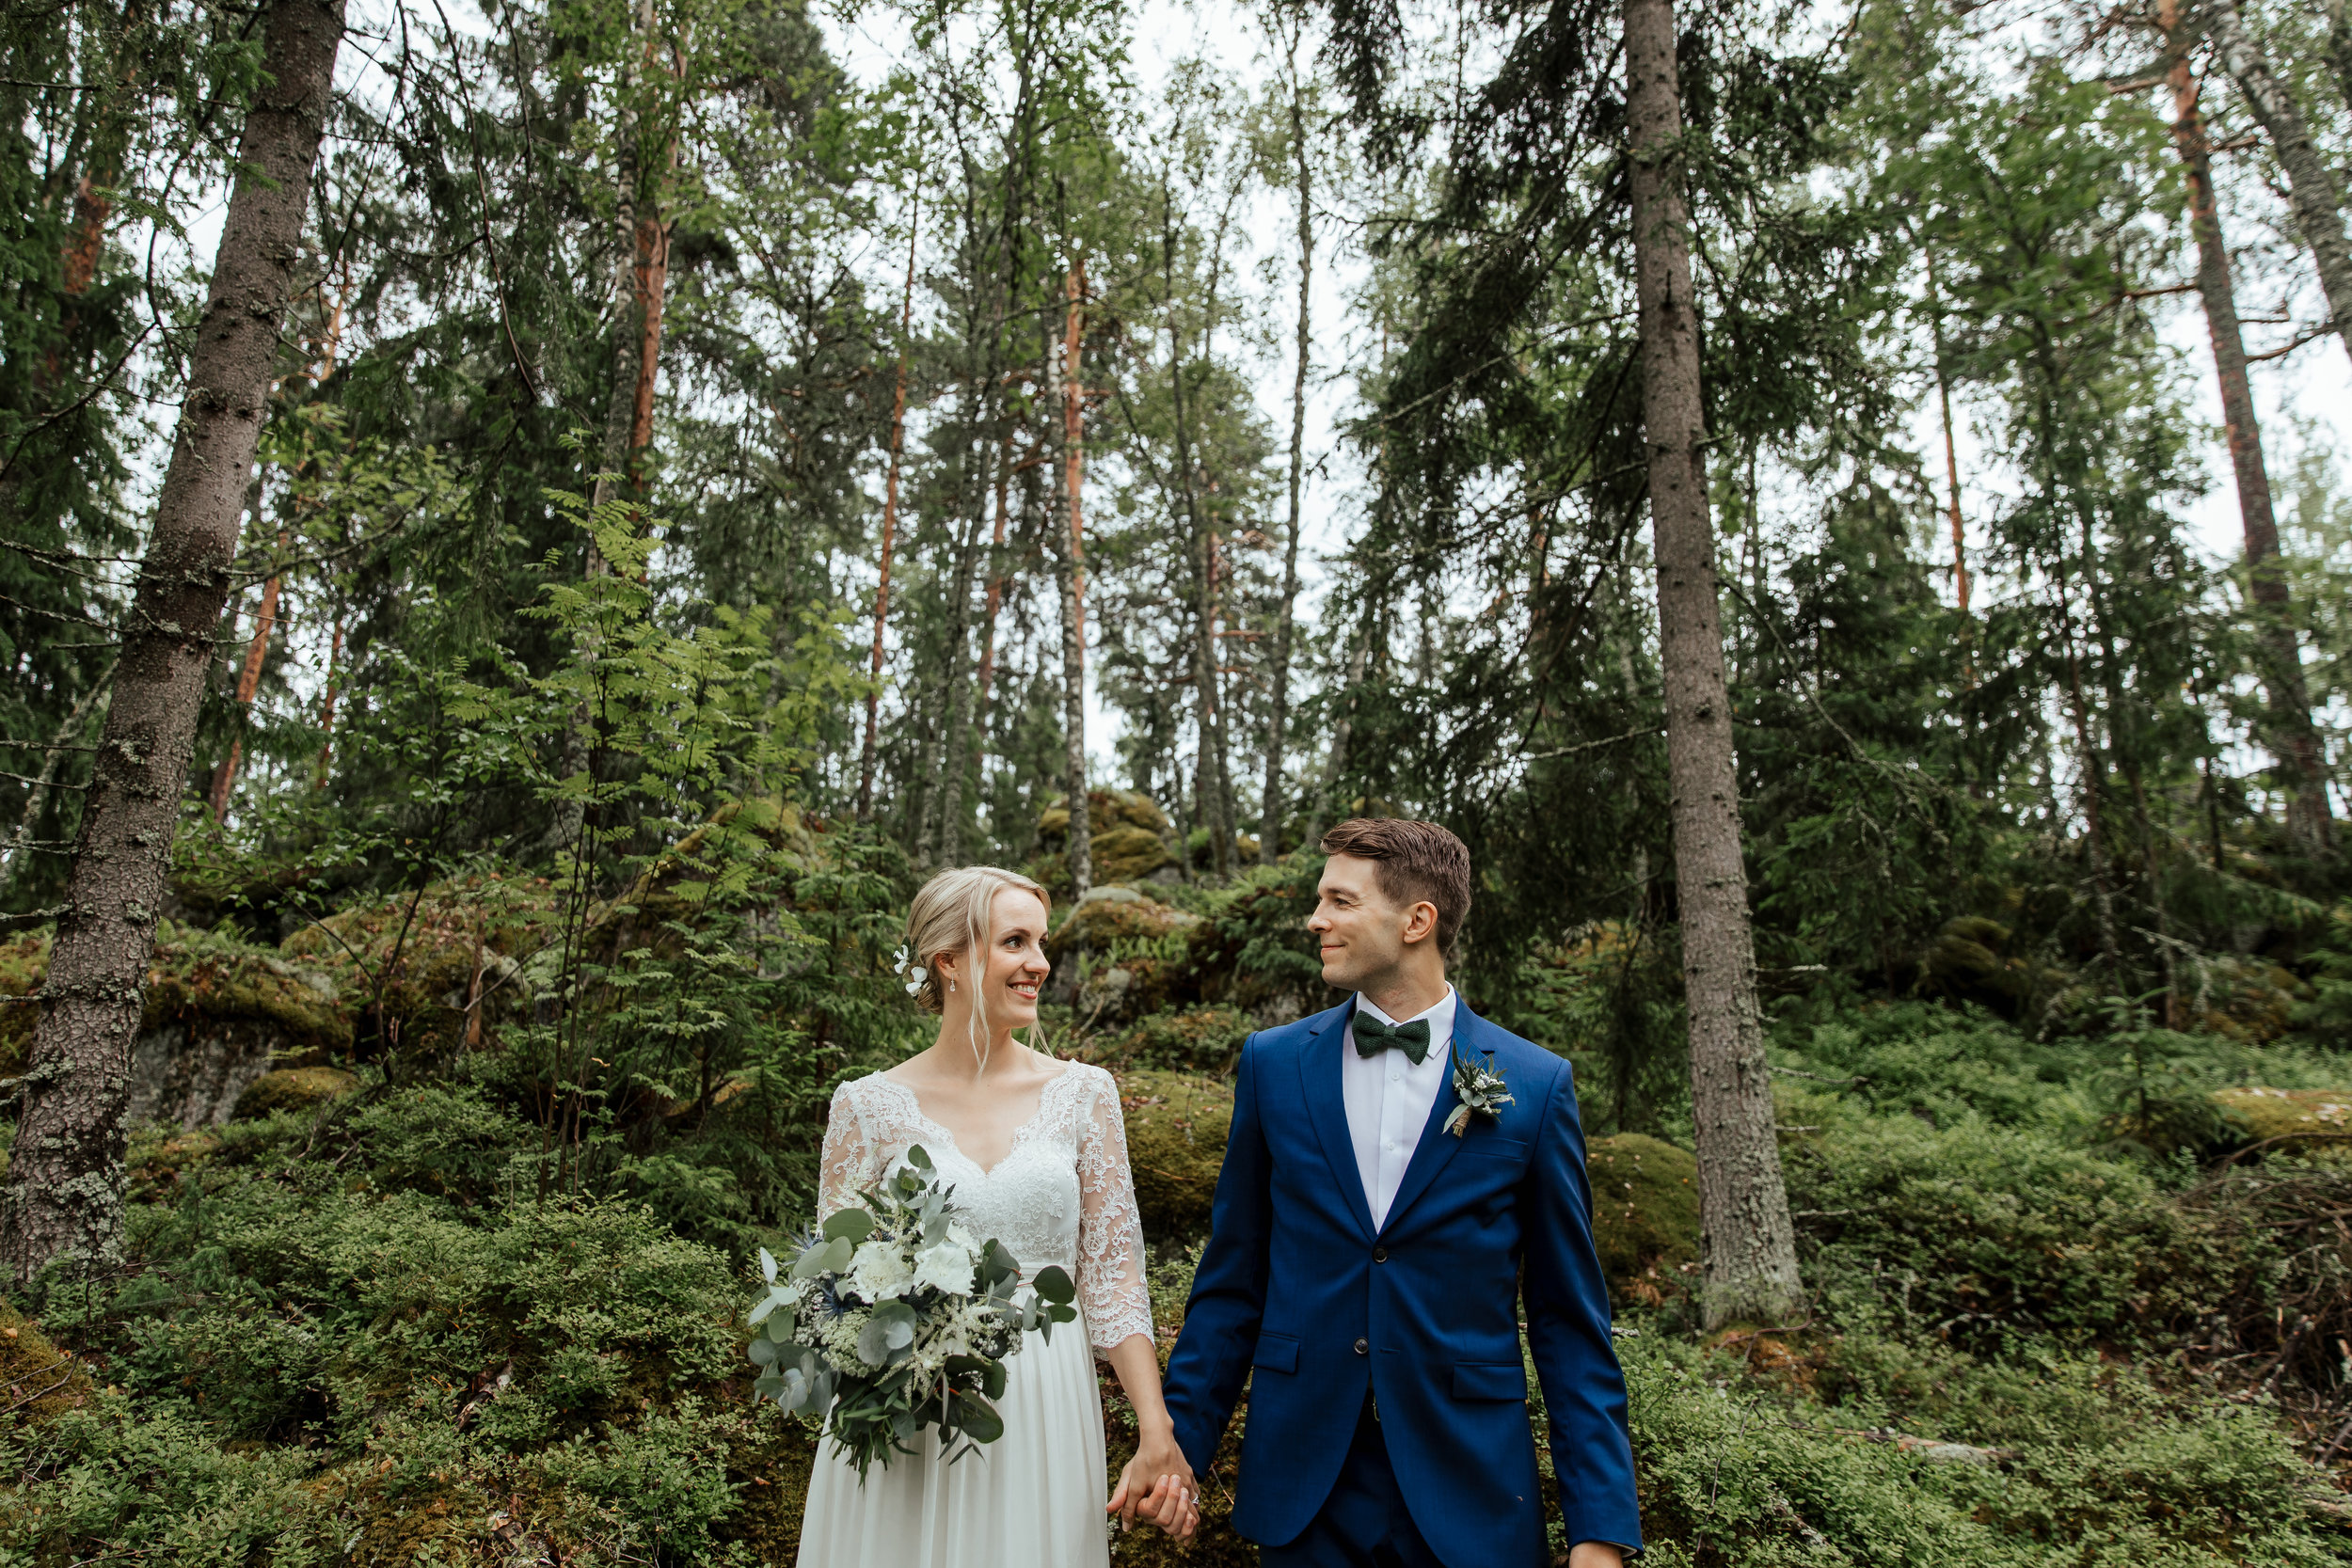 Janni & Jesse, 6th July 2019 - Story coming soon.